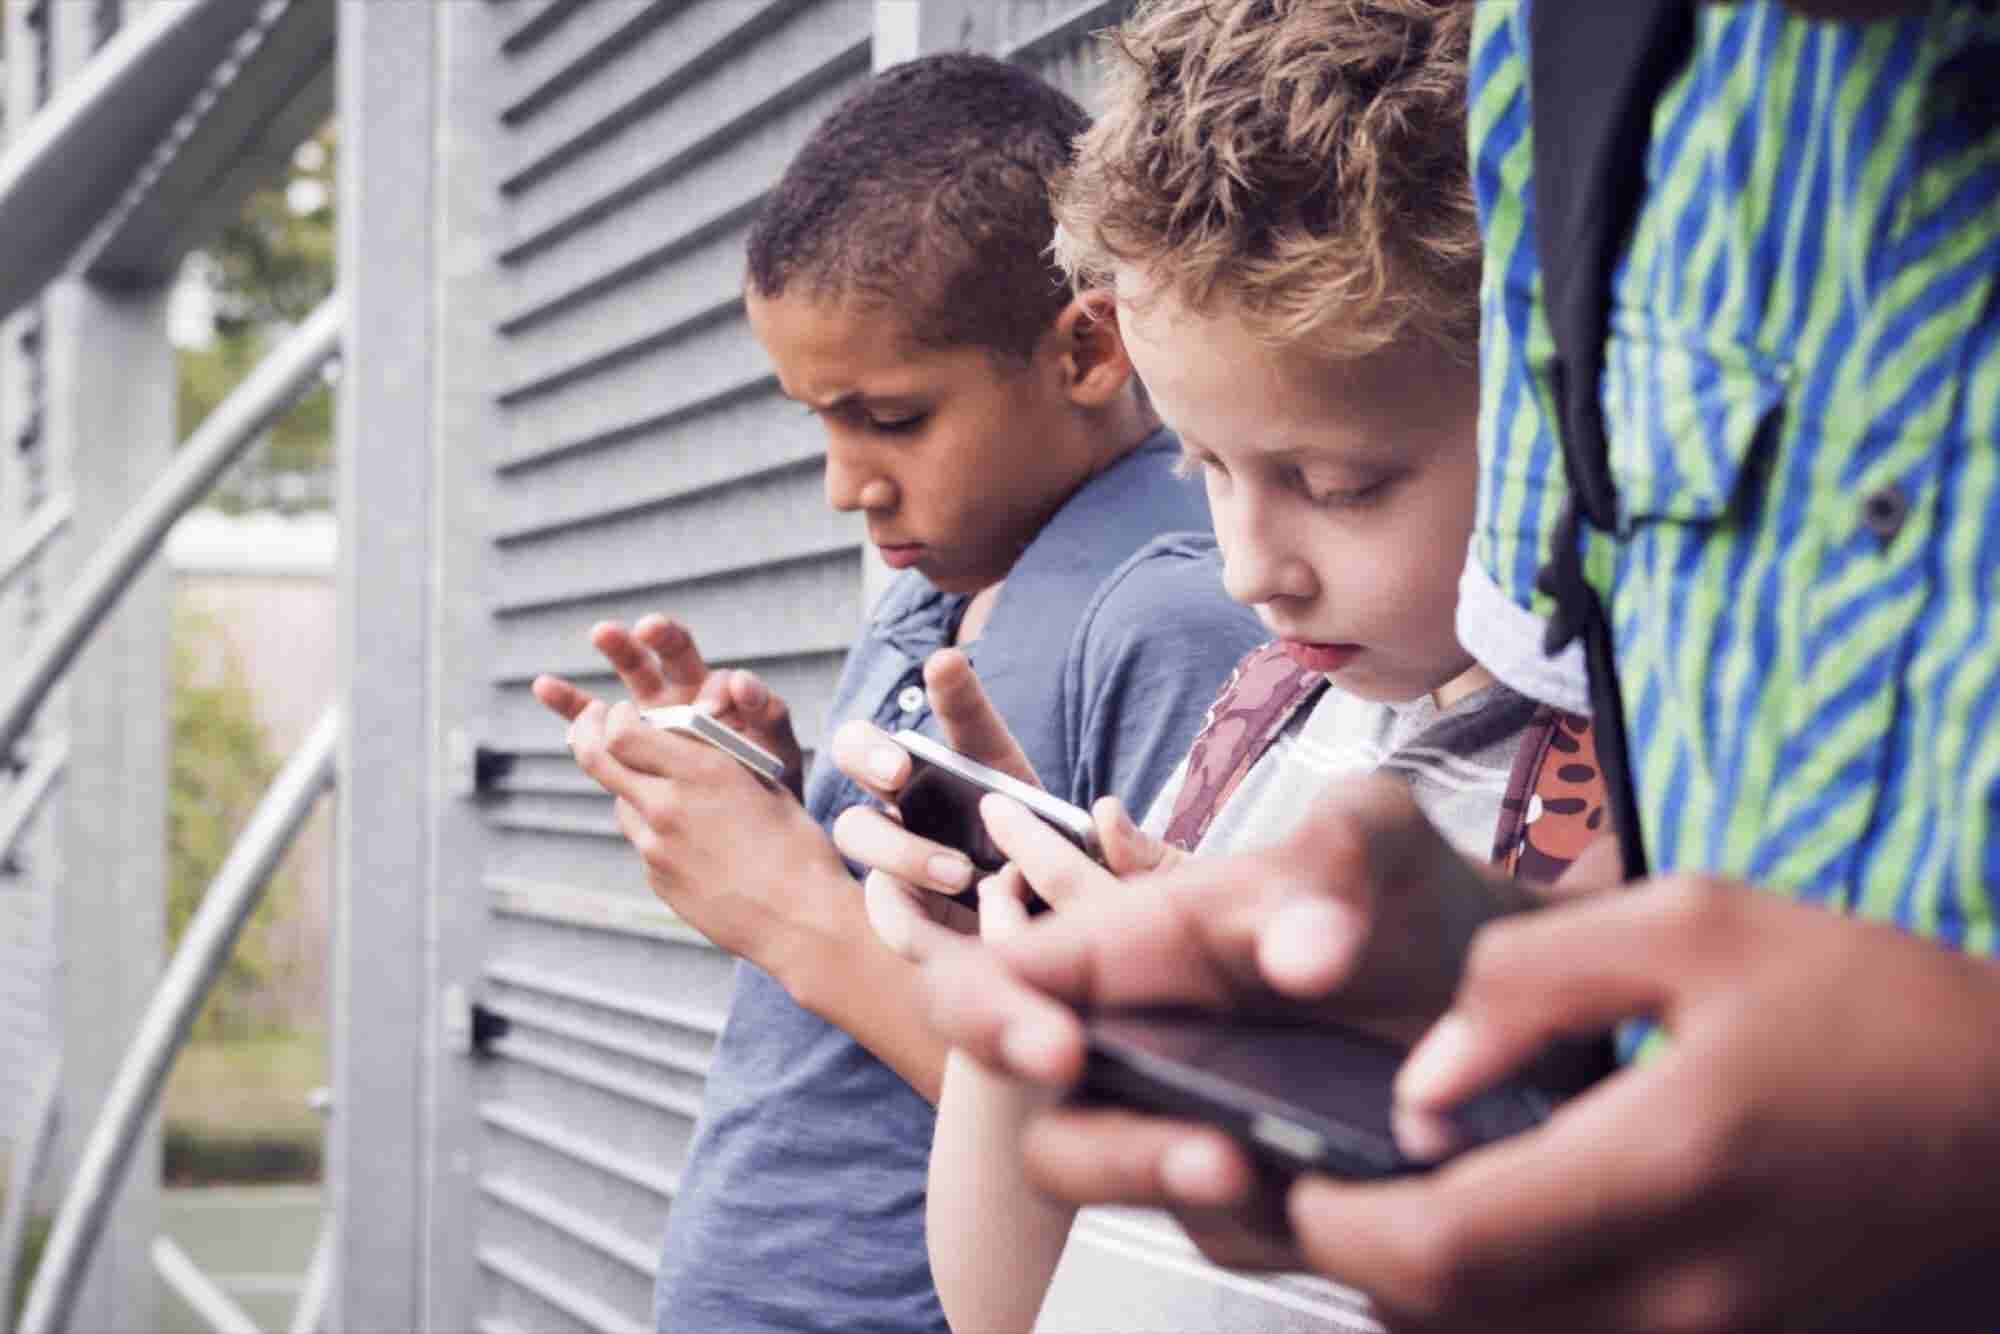 Facebook Offering Refunds for Kids' In-App Purchases